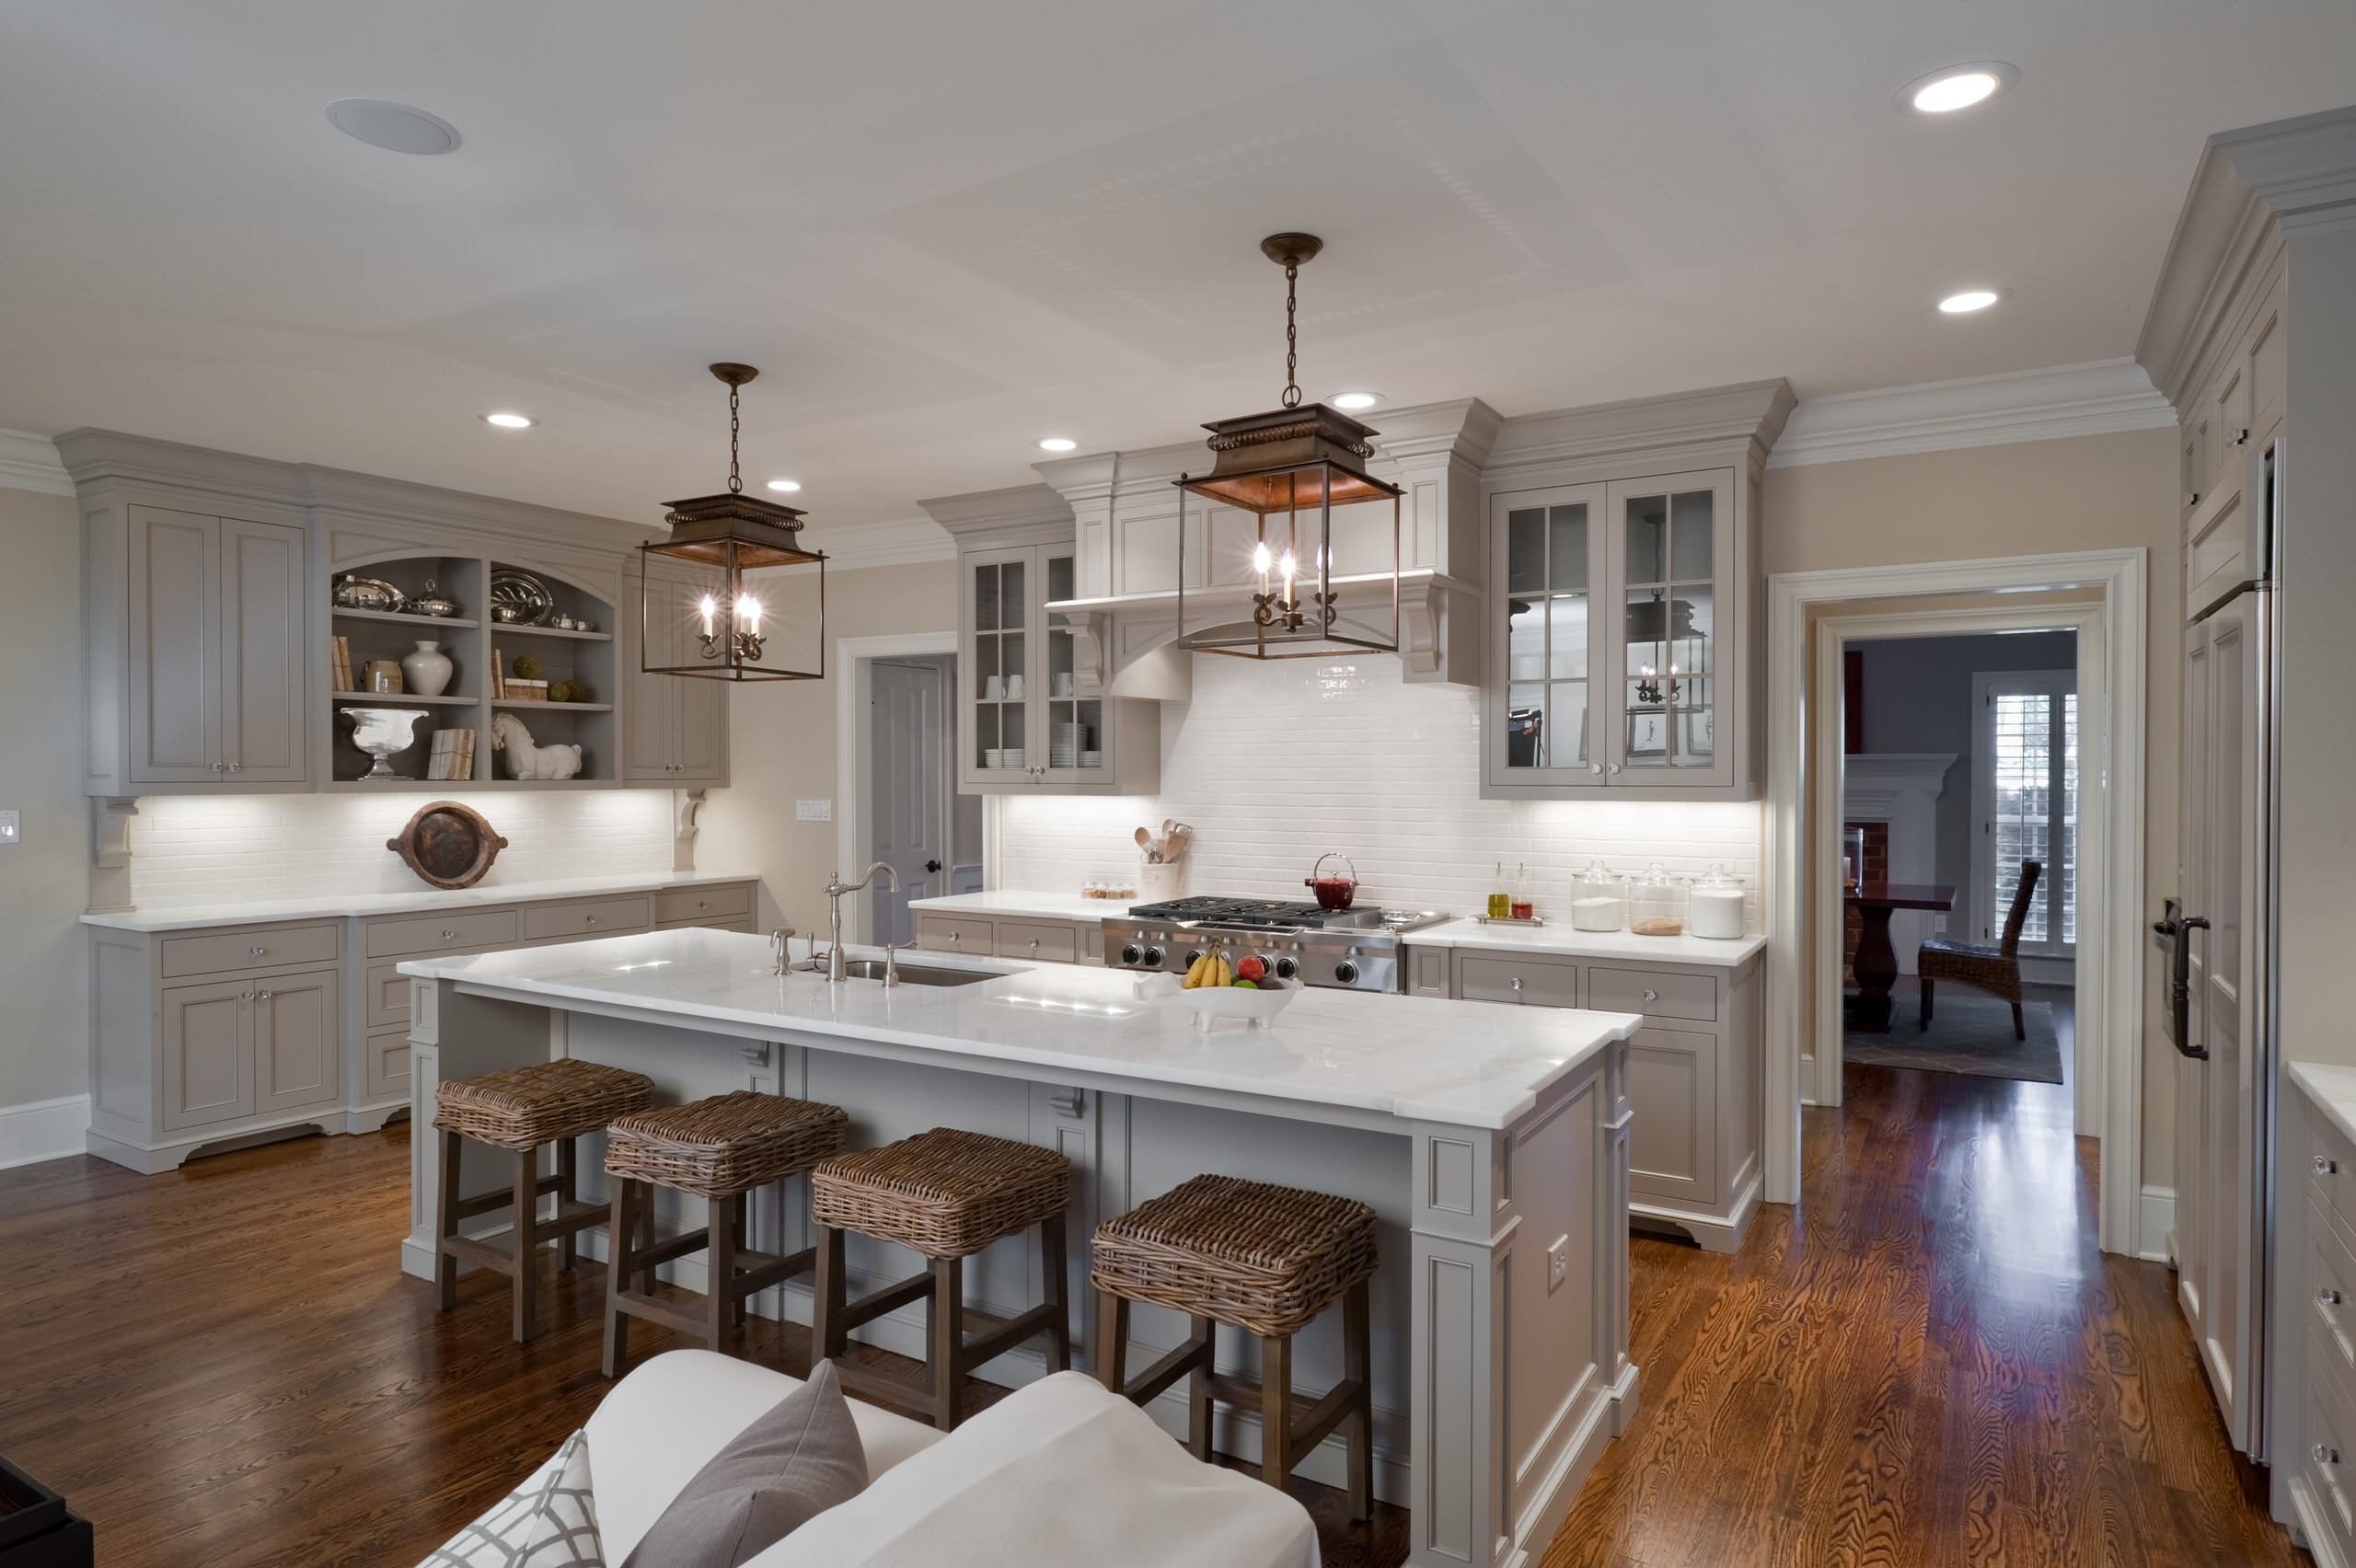 General contractors charlotte nc Traditional Kitchen glass front cabinets pendant lanterns woven counter stools